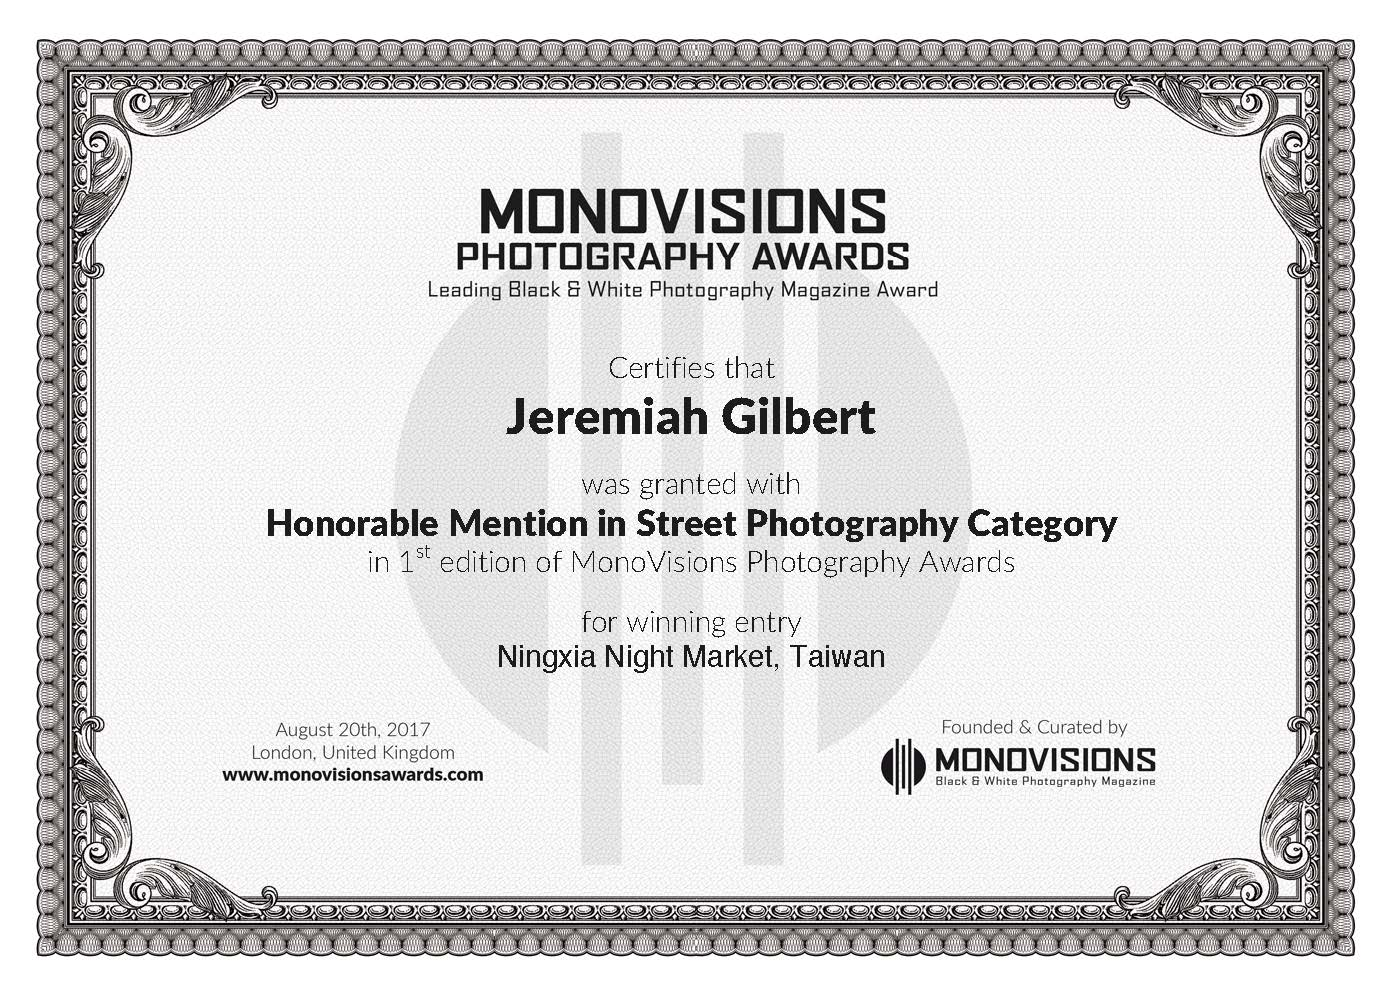 Honorable mention monovisions photography awards jgtravels honorable mention in this years monovisions photography awards given the caliber of the winners i am indeed honored you can see the series here 1betcityfo Gallery